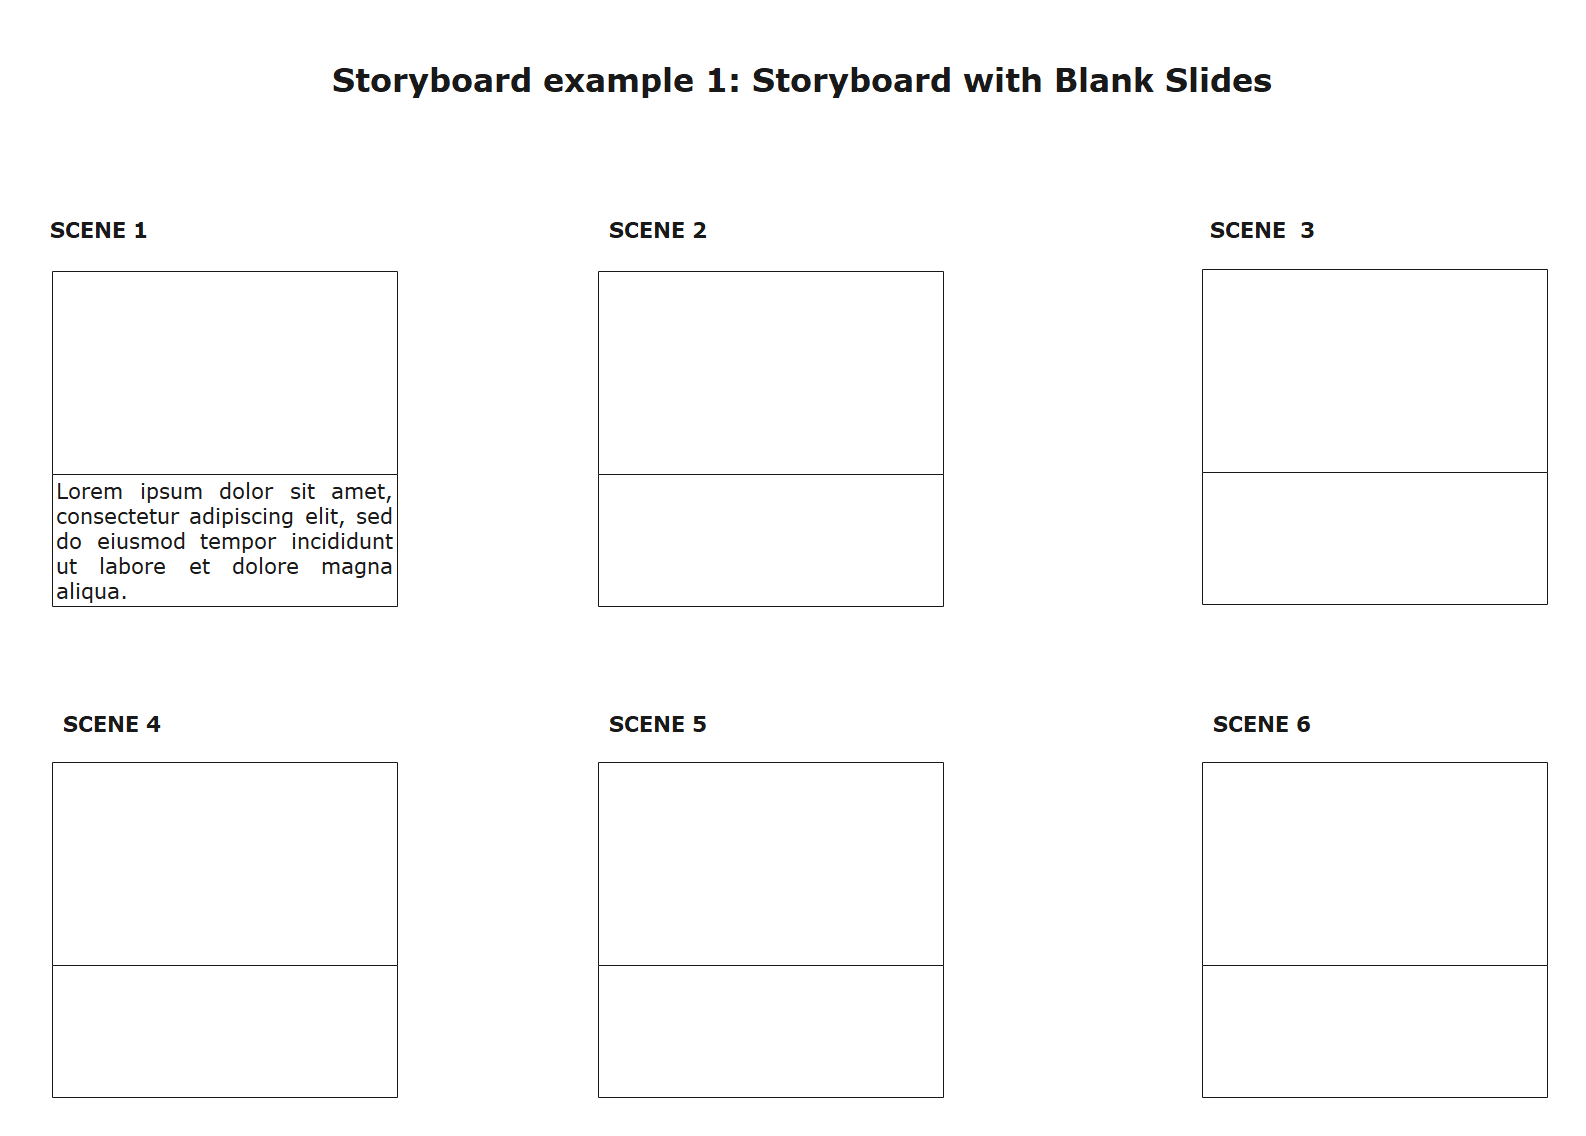 Storyboard with Blank Slides